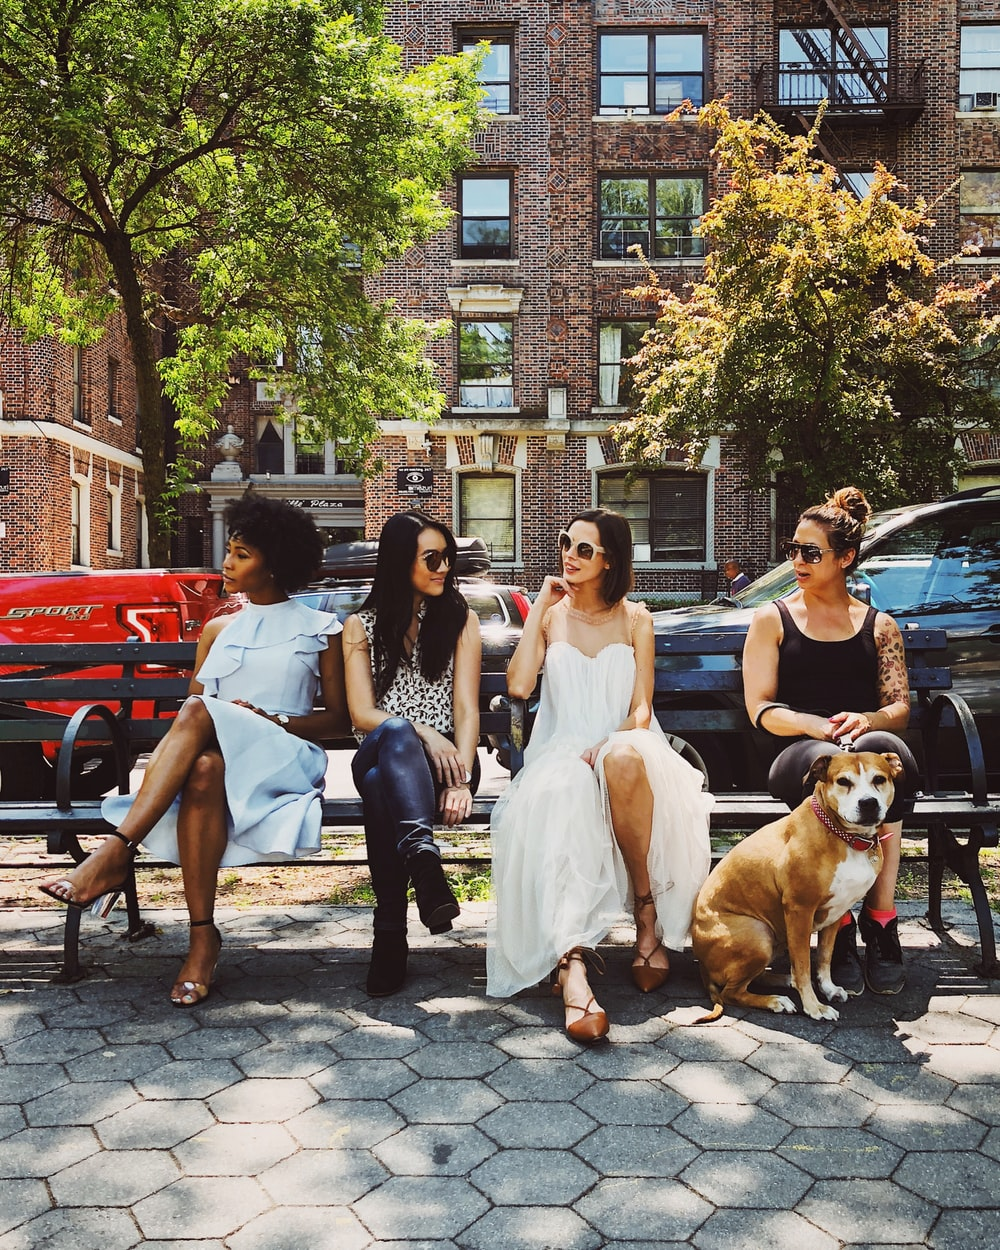 four women sitting on black steel bench during daytime